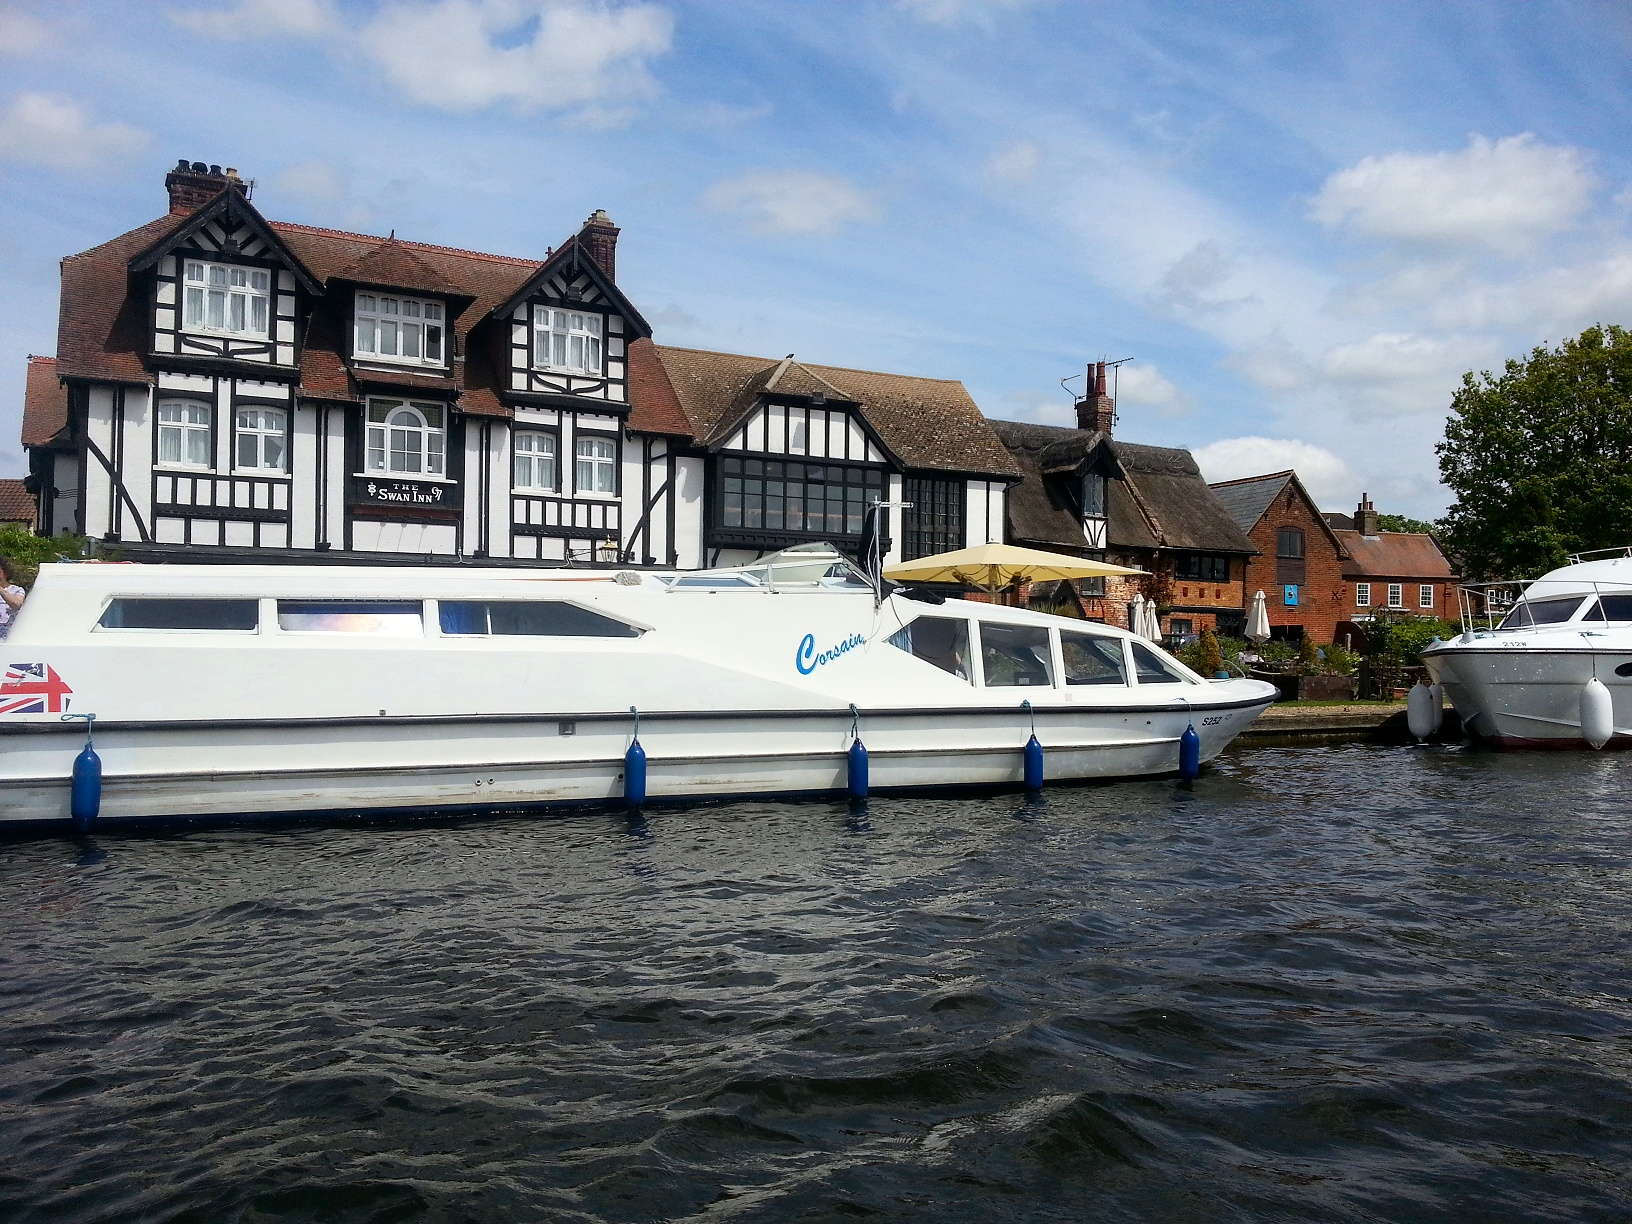 Hire boat from Brundall moored at 'The Swan Inn'